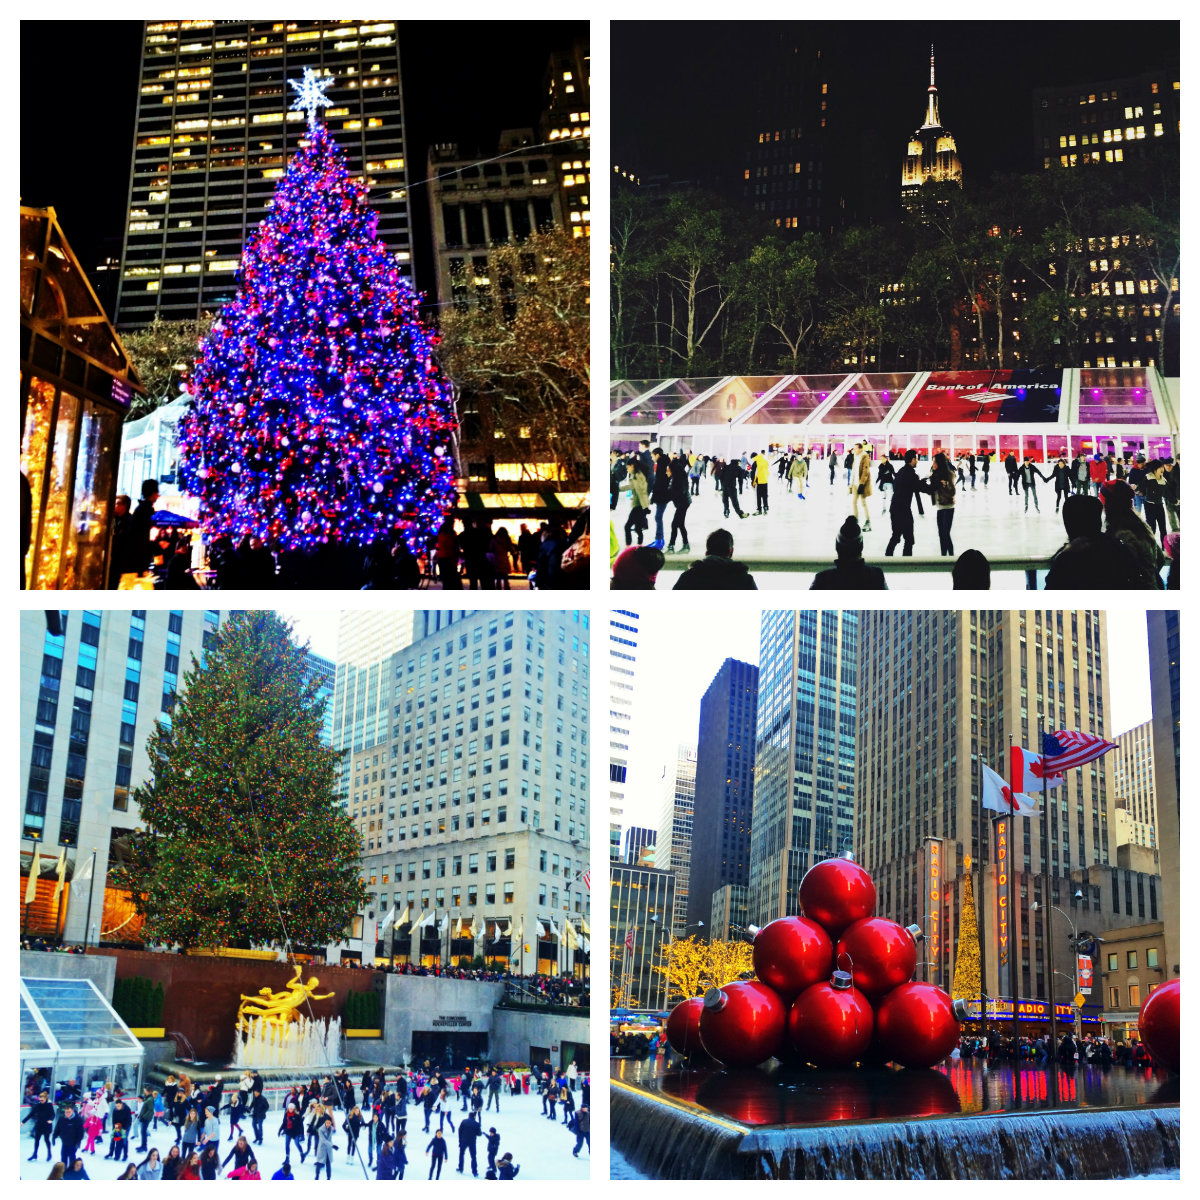 Christmas in New York - Rockerfeller Tree - Fifth Avenue